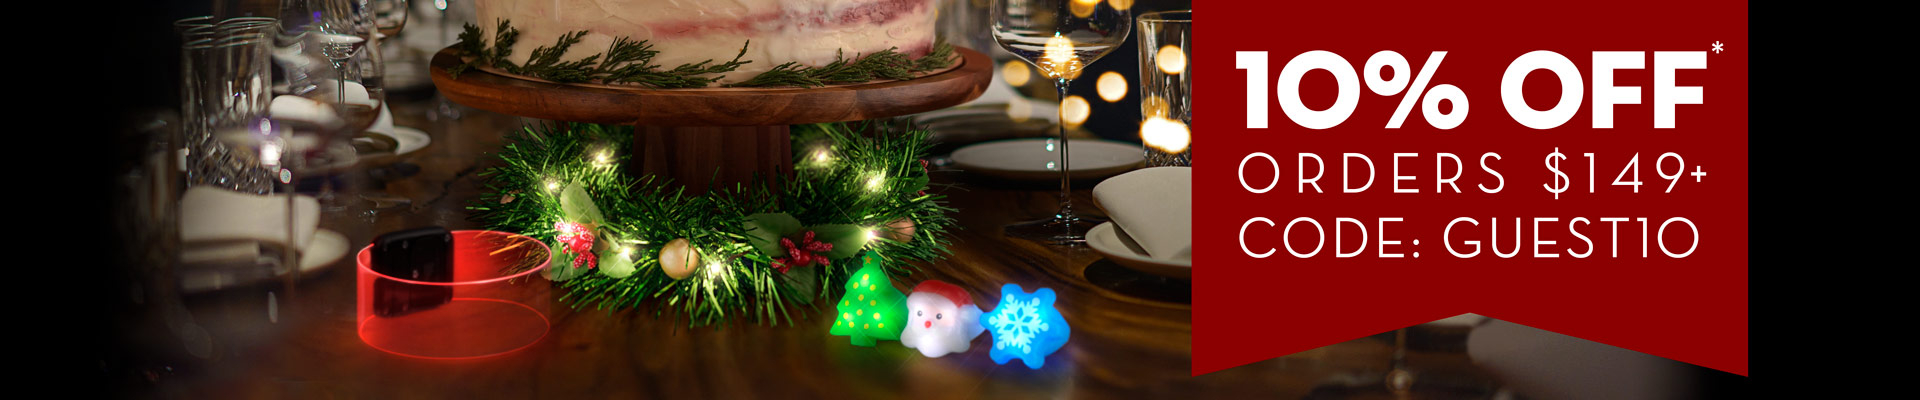 Holiday dinning table with Light Up Christmas toys and decoration